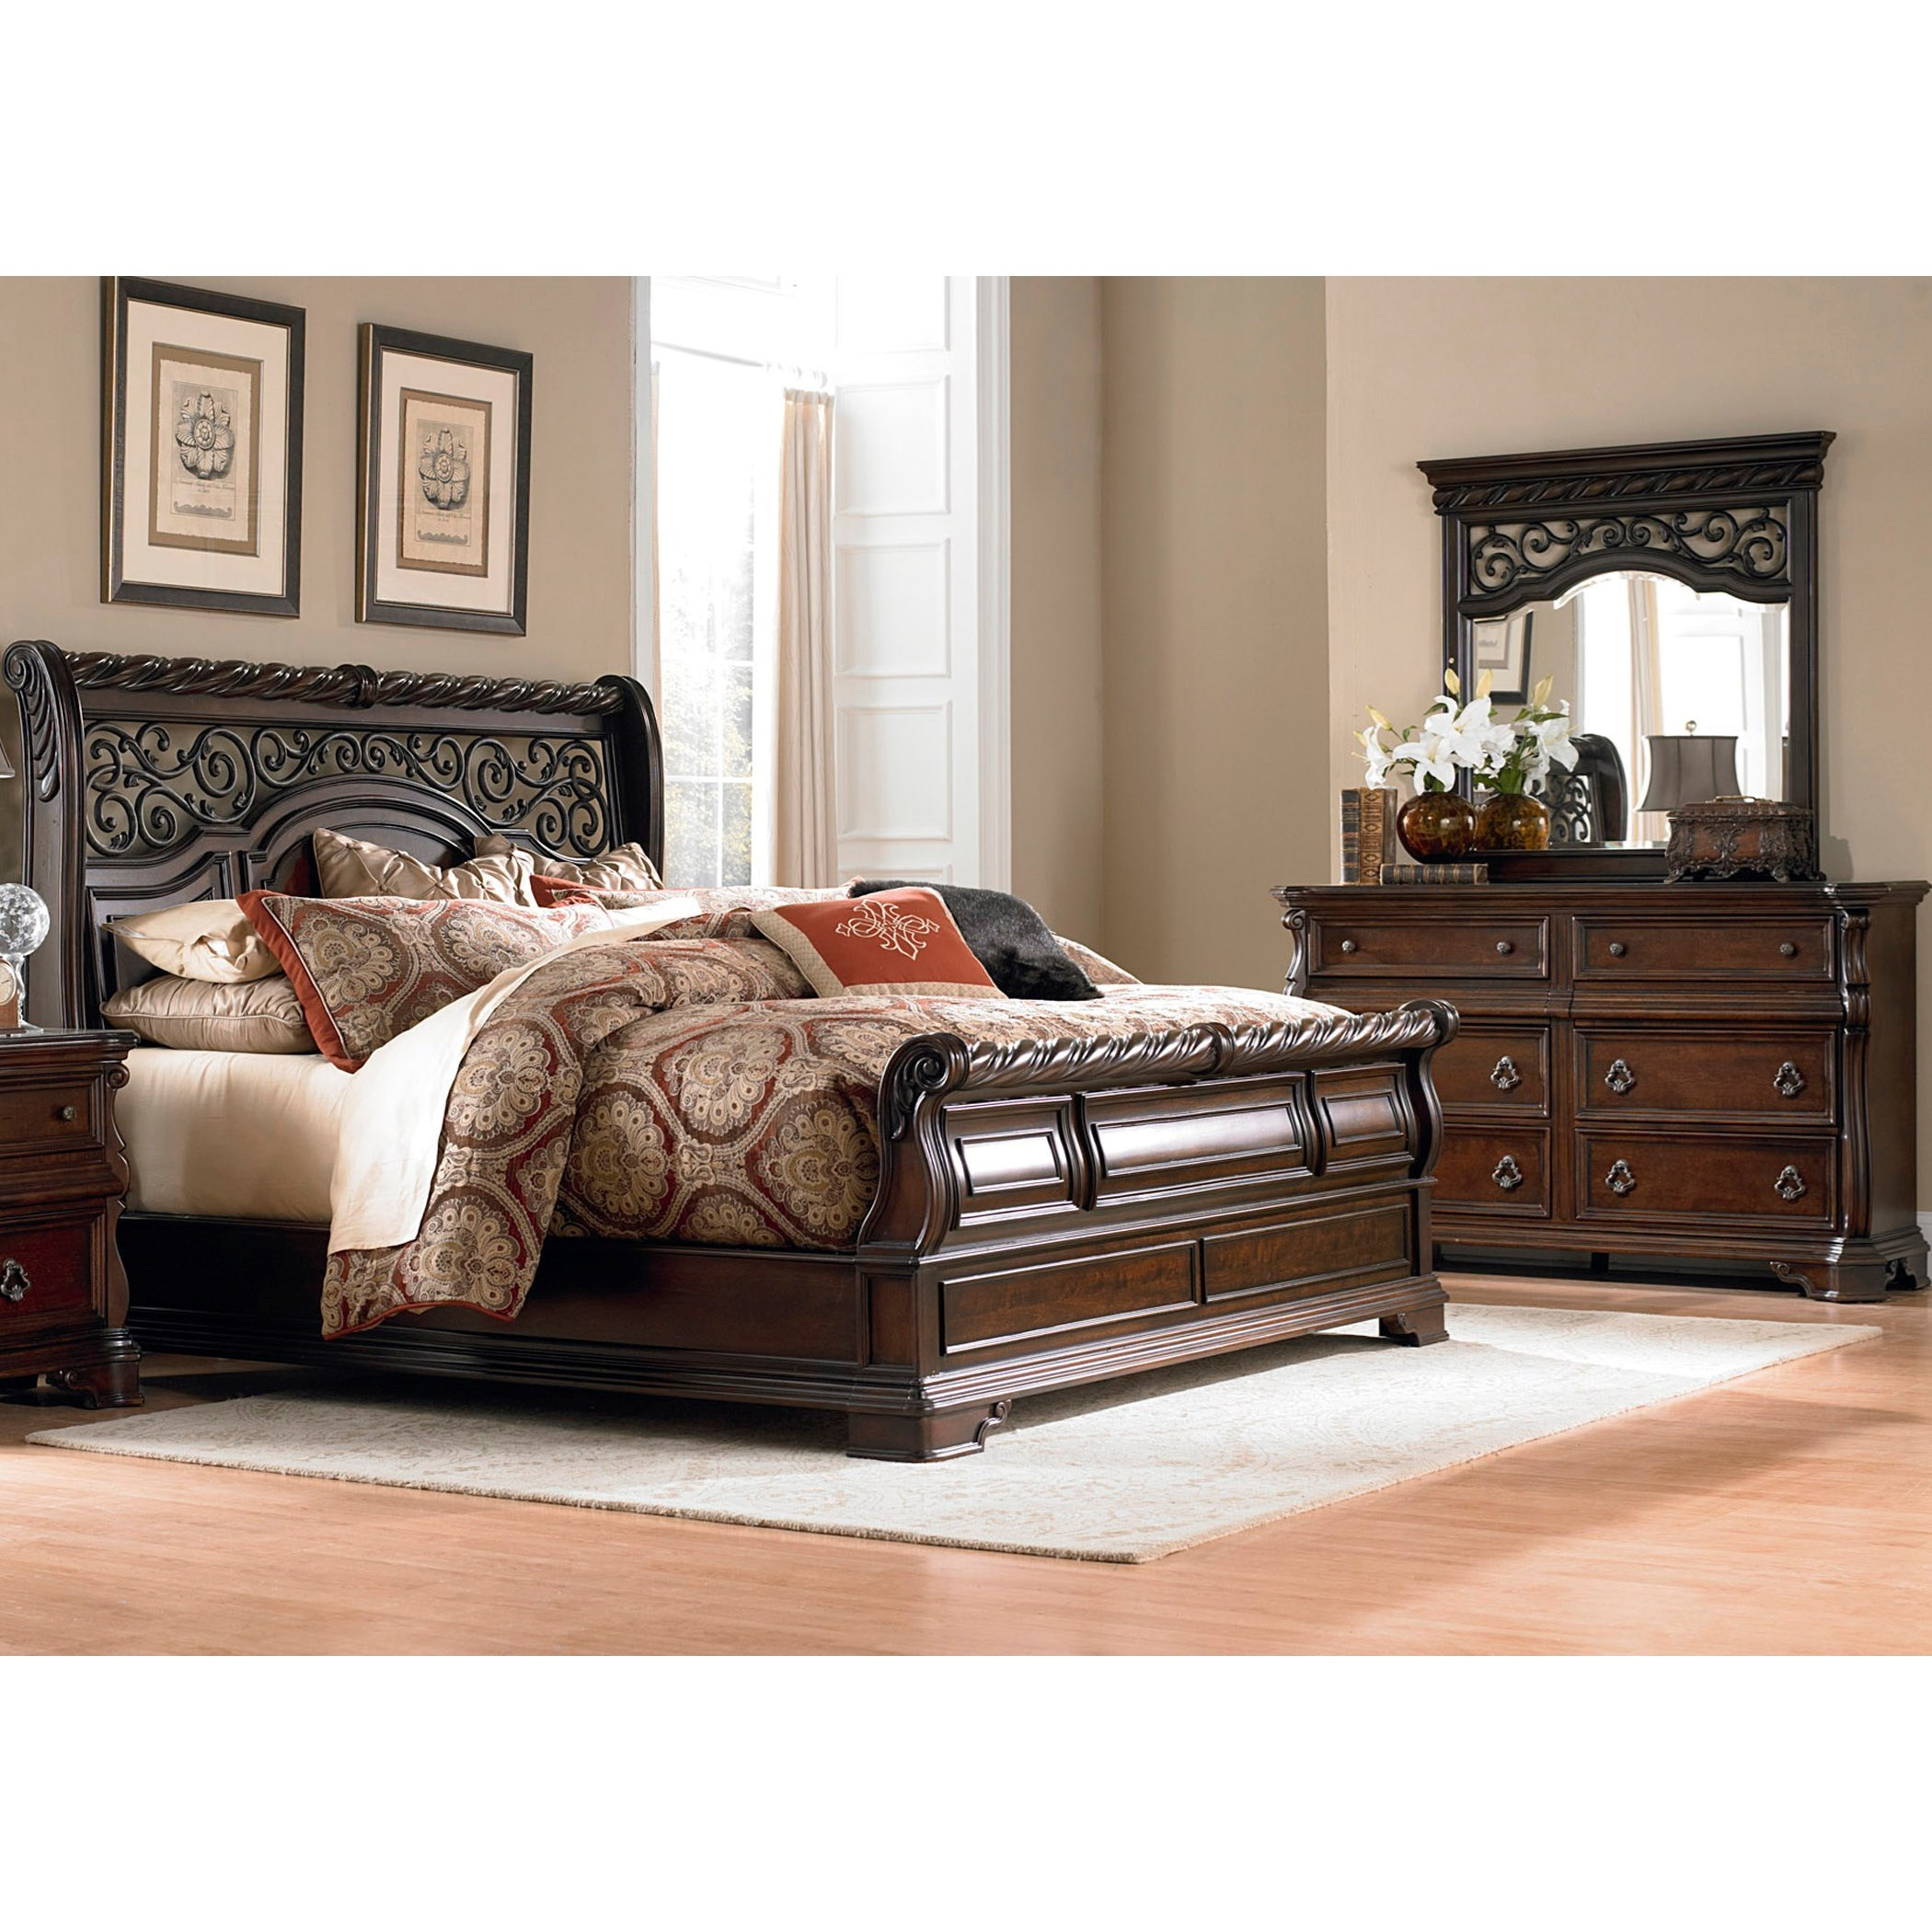 Arbor Place Queen Bedroom Group by Liberty Furniture at Catalog Outlet